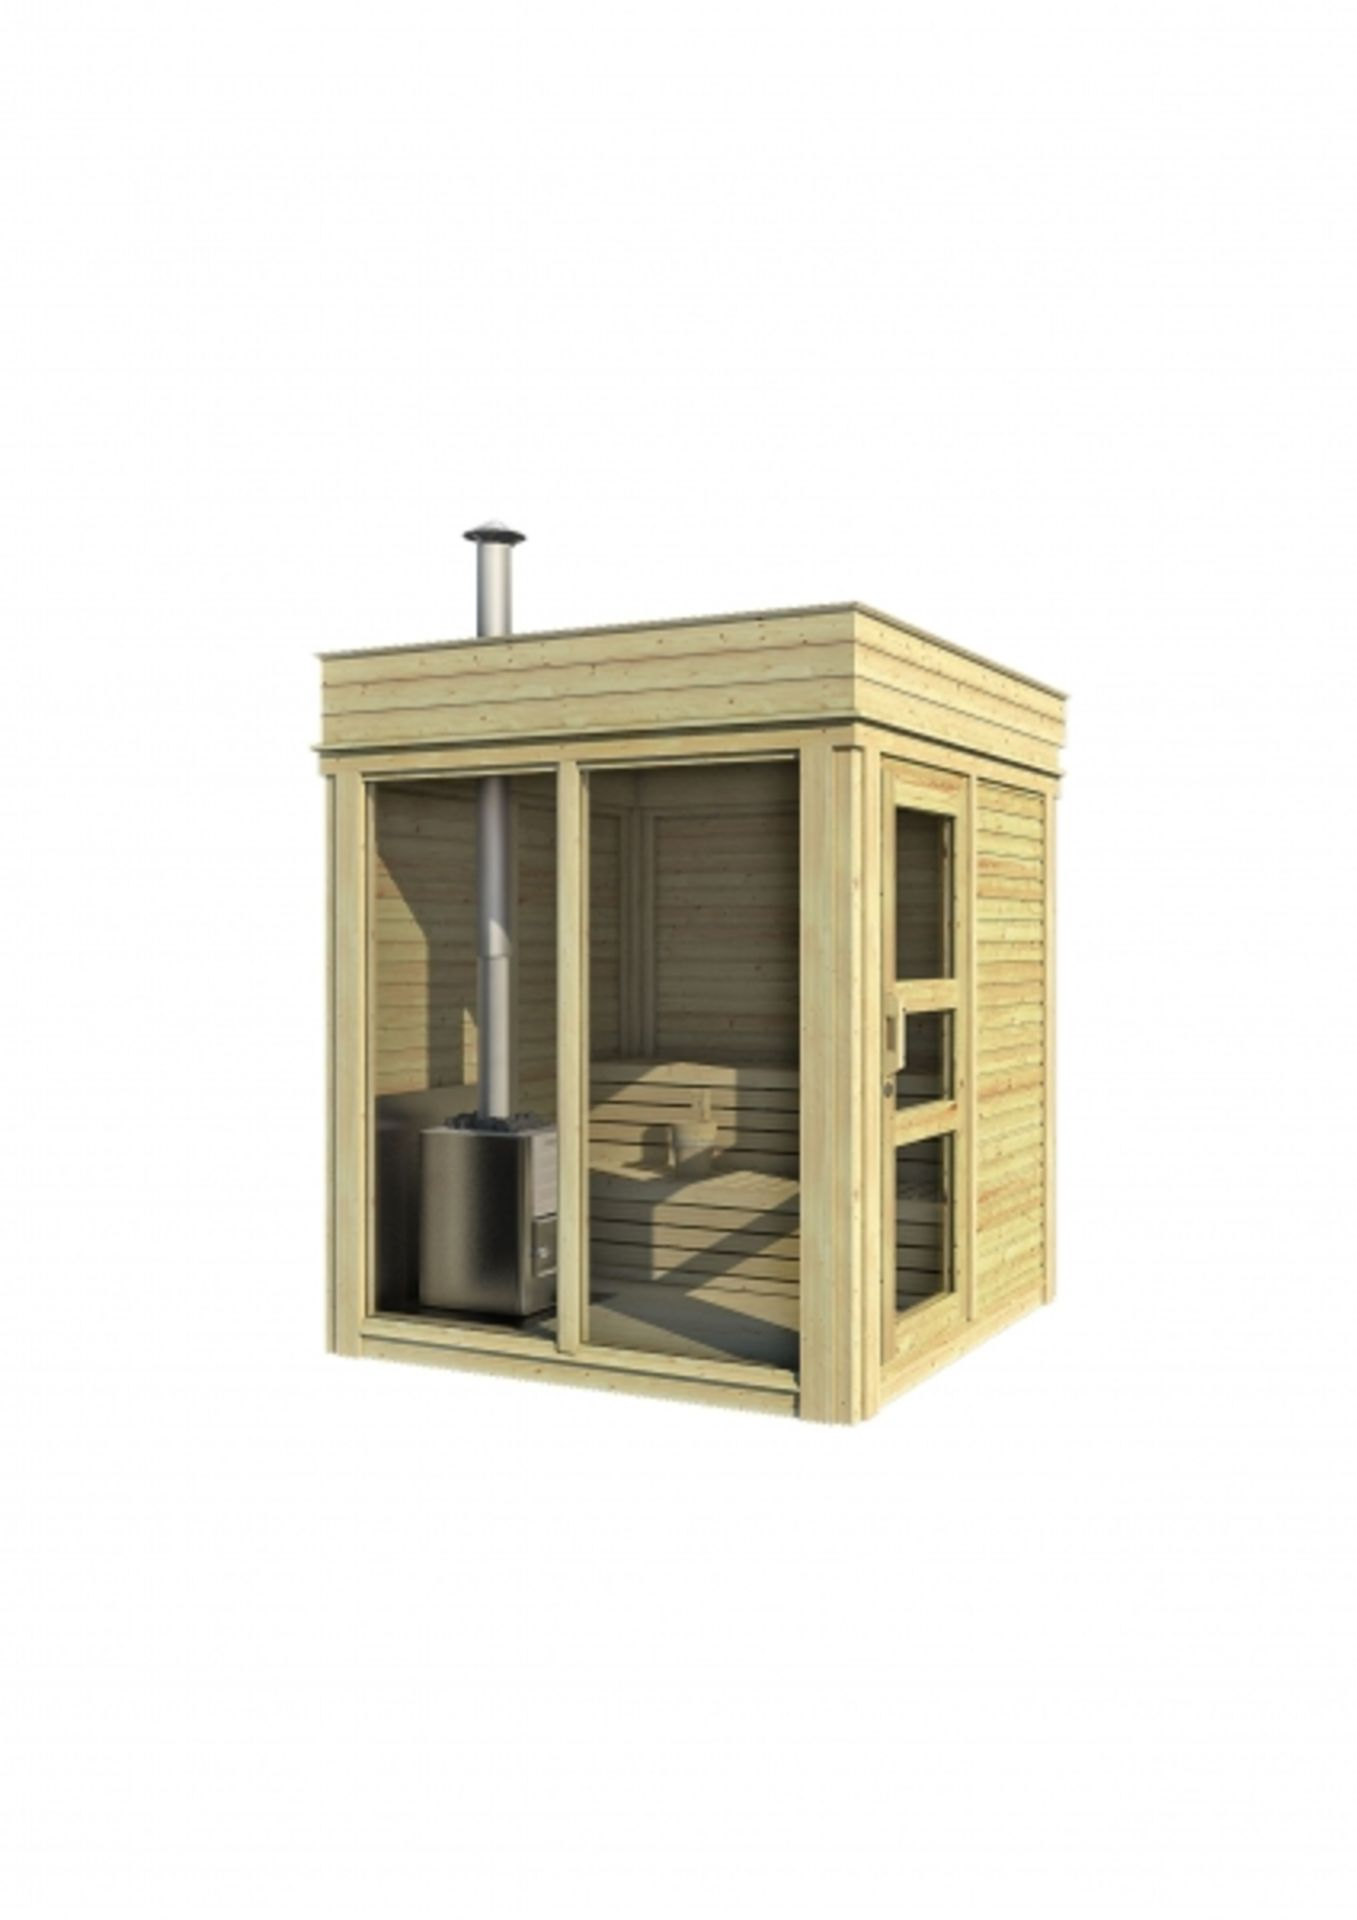 Lot 19015 - + VAT Brand New 2 x 2m Sauna Cube - Made From Spruce Wood - Roof Covered With Black Bitumen Weld